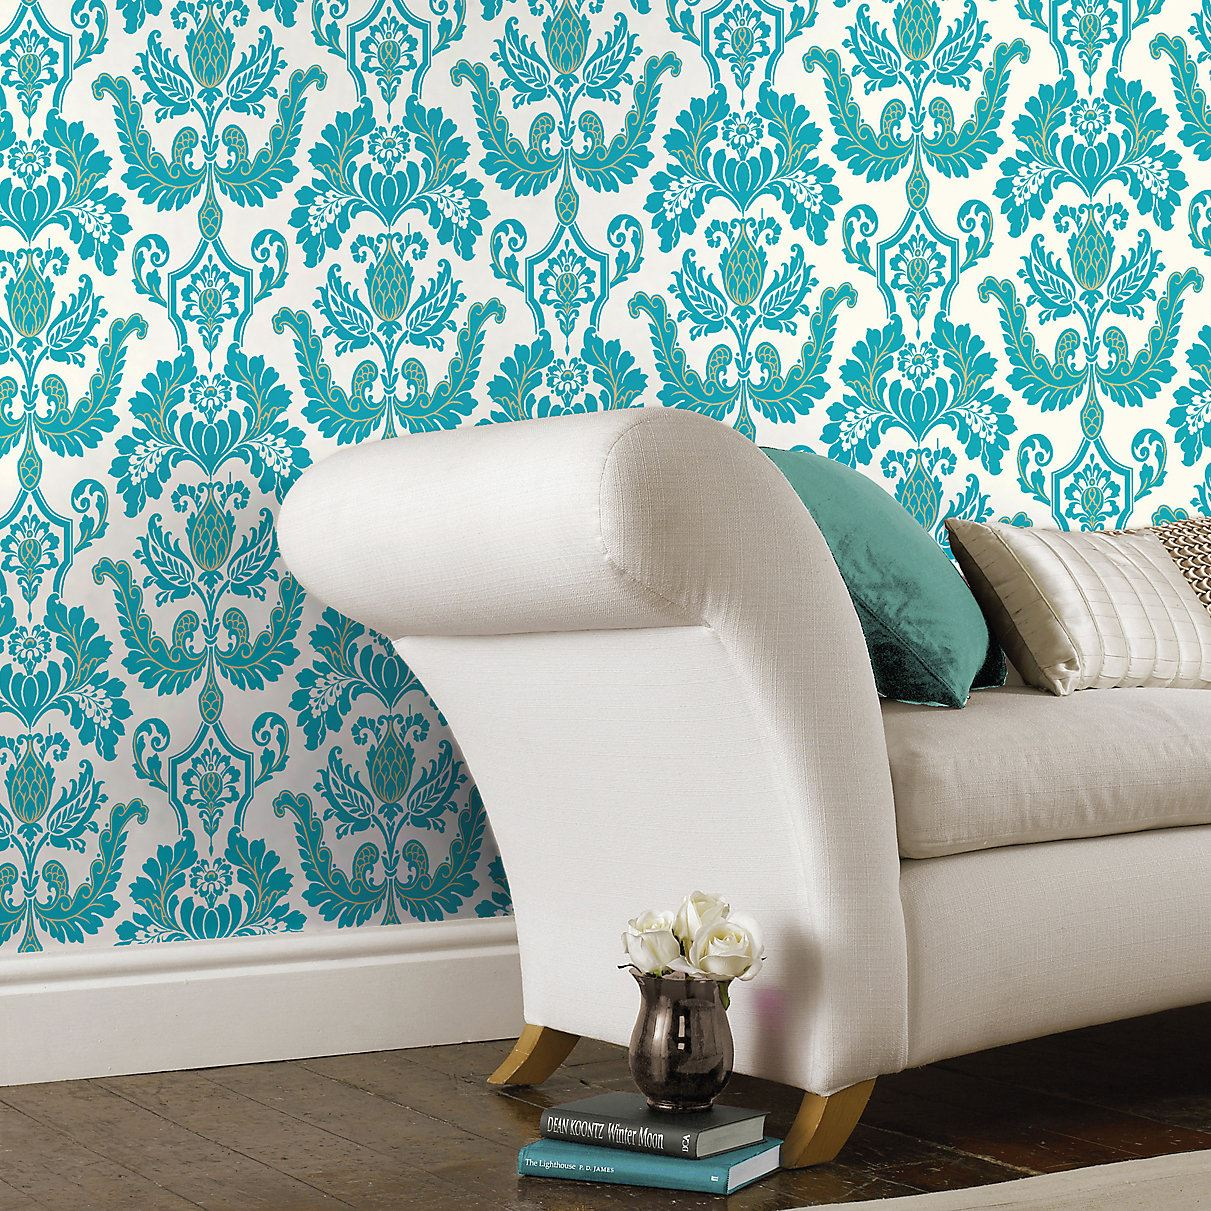 statement flock cicely paste the wall